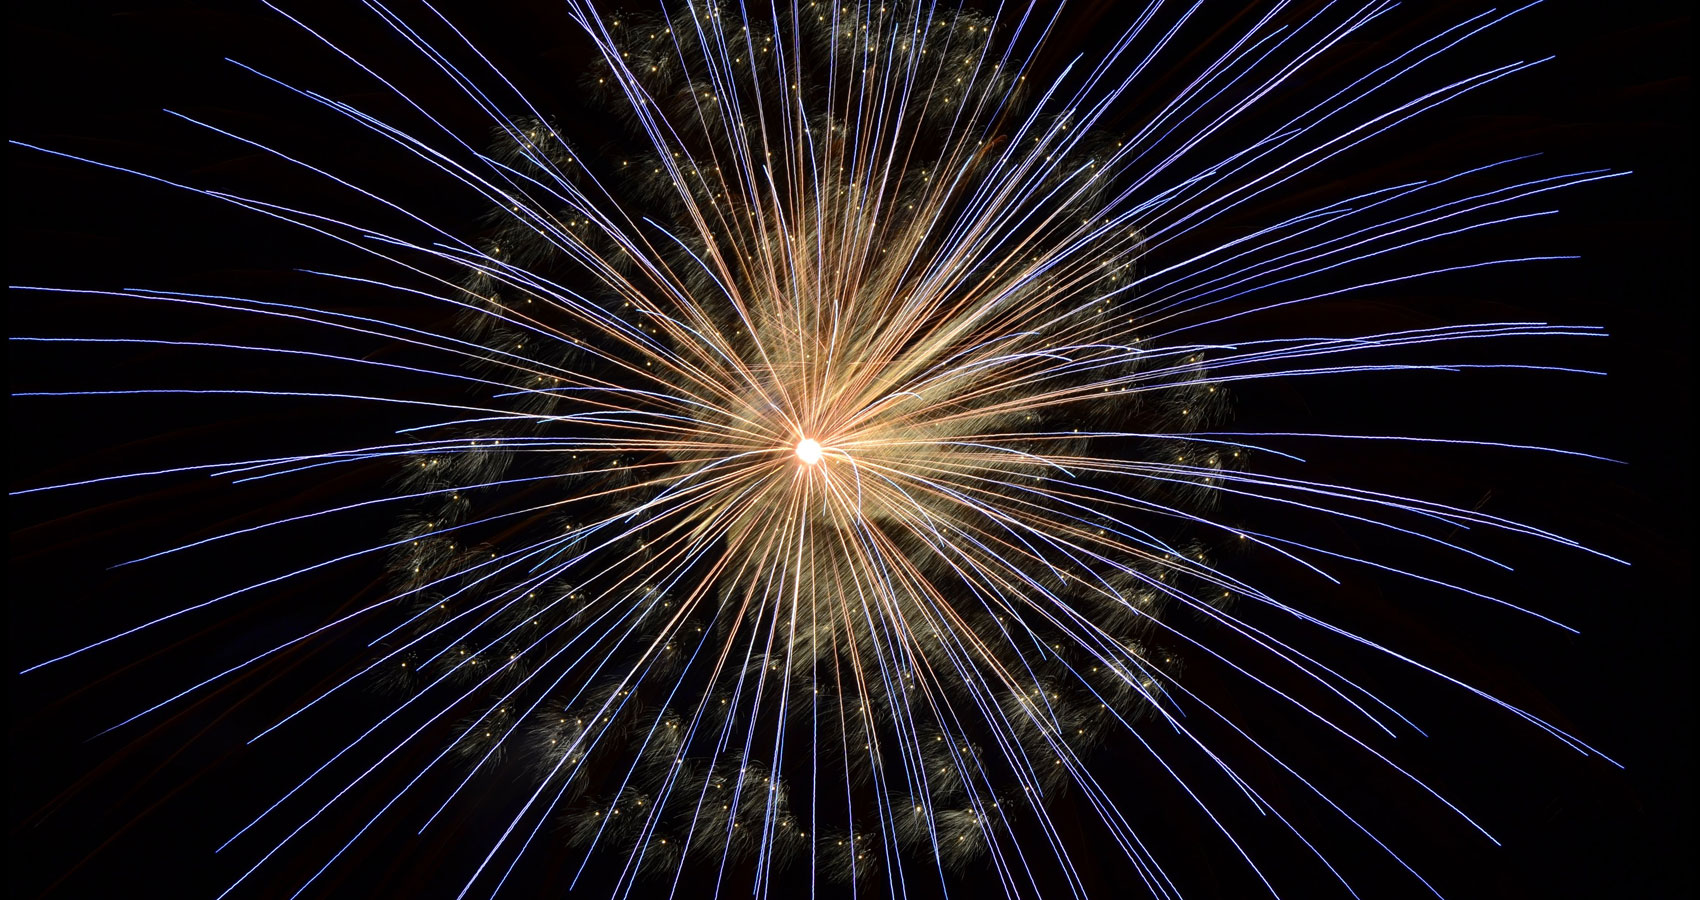 At The Entering Of The New Year by Thomas Hardyat Spillwords.com